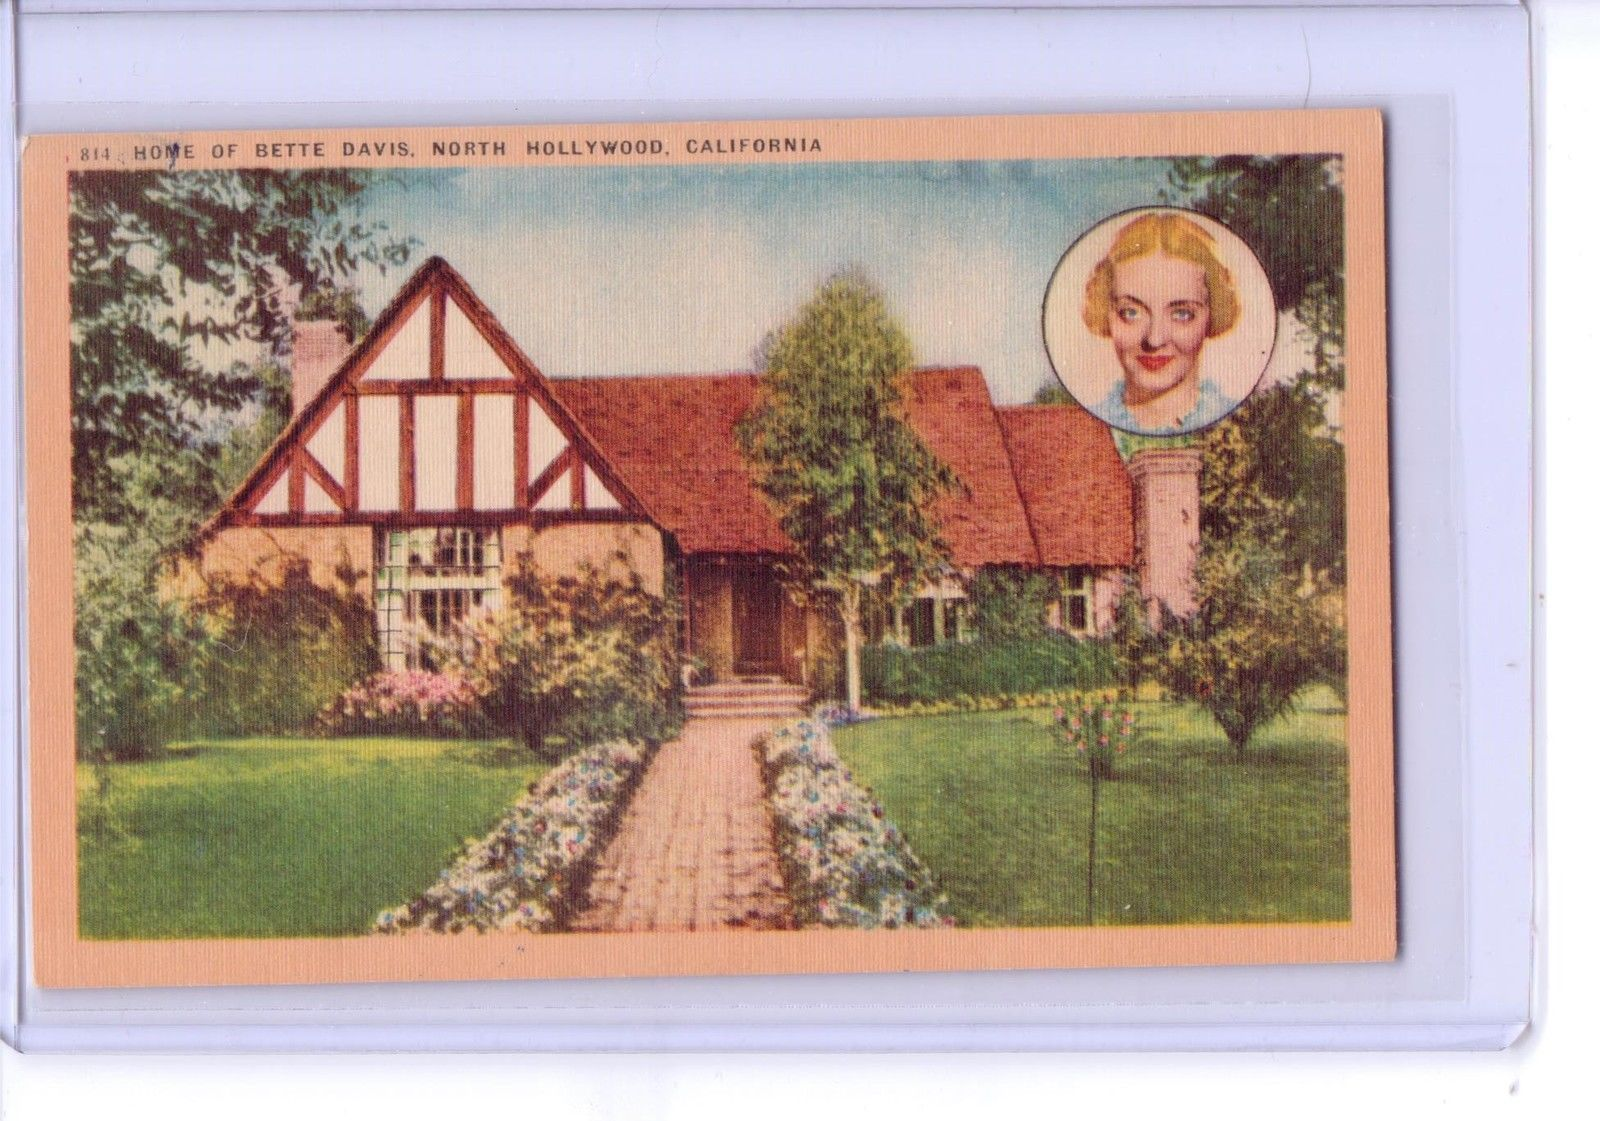 Vintage 814 Home of Bette Davis Celebrity North Hollywood